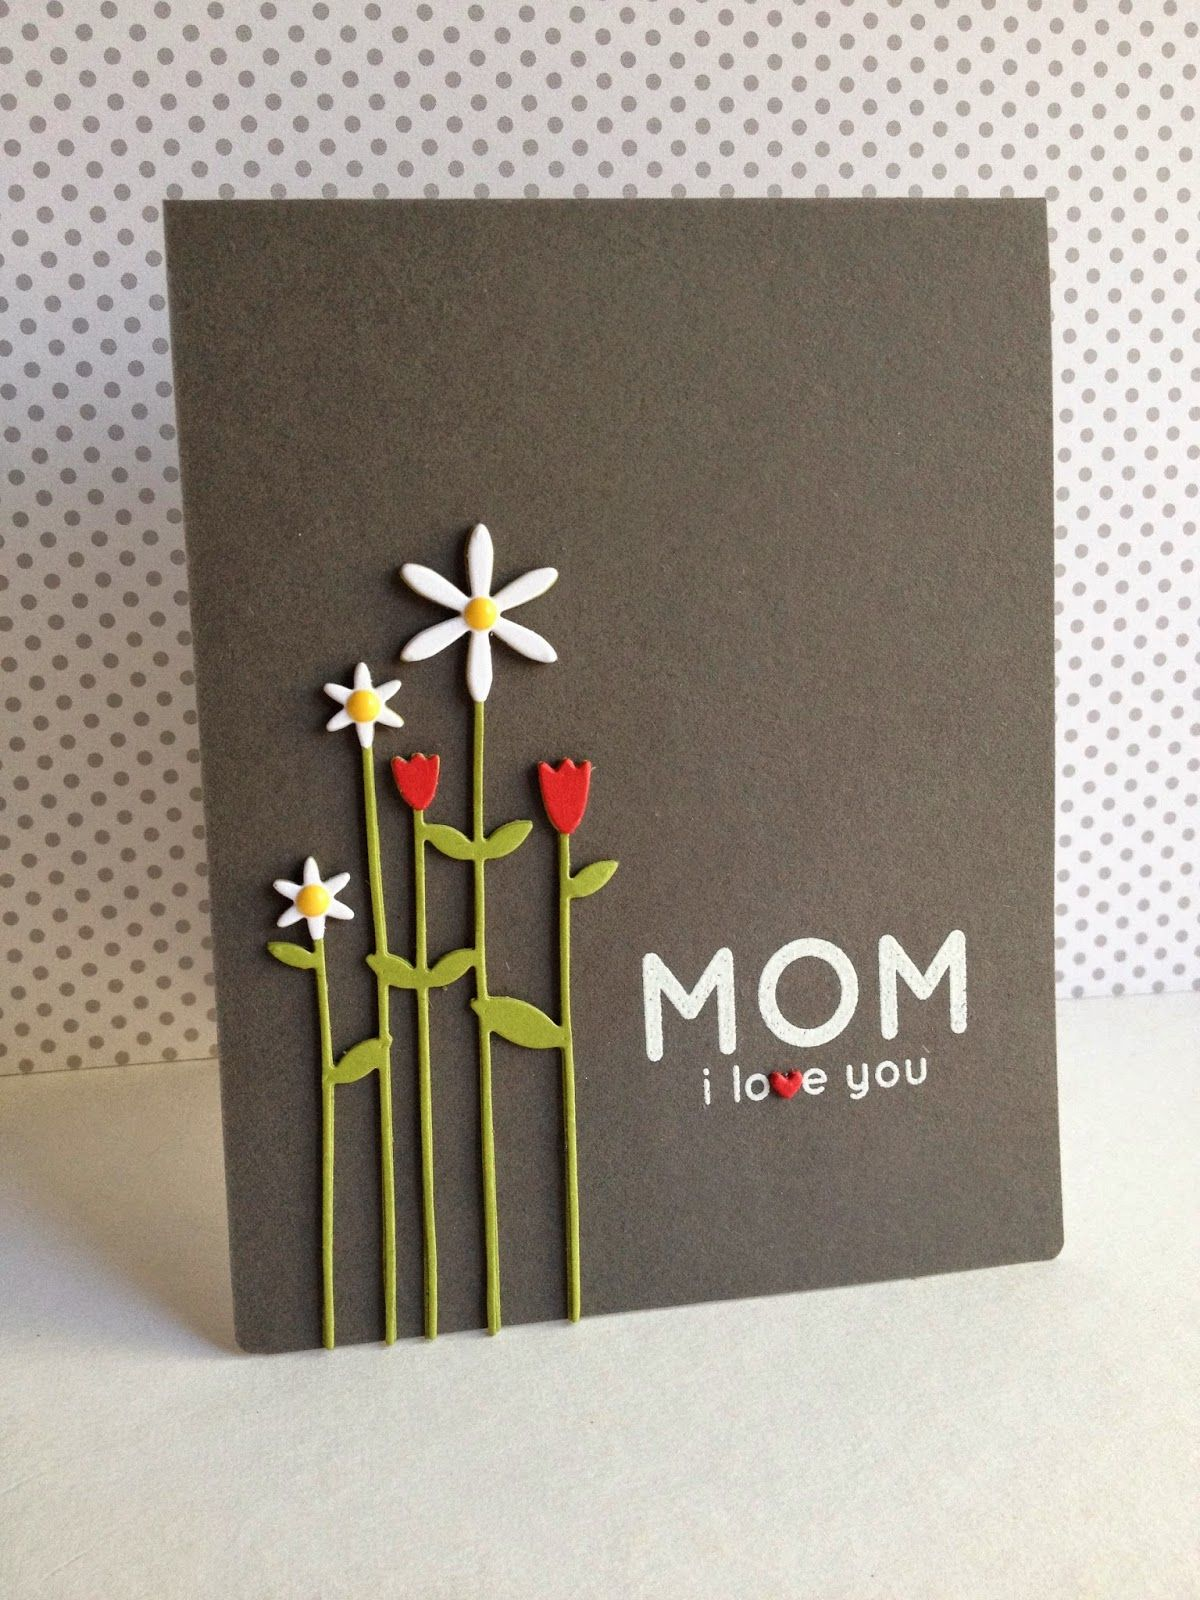 Remarkable Tall Flowers For Mom With Images Mom Cards Birthday Cards For Funny Birthday Cards Online Fluifree Goldxyz